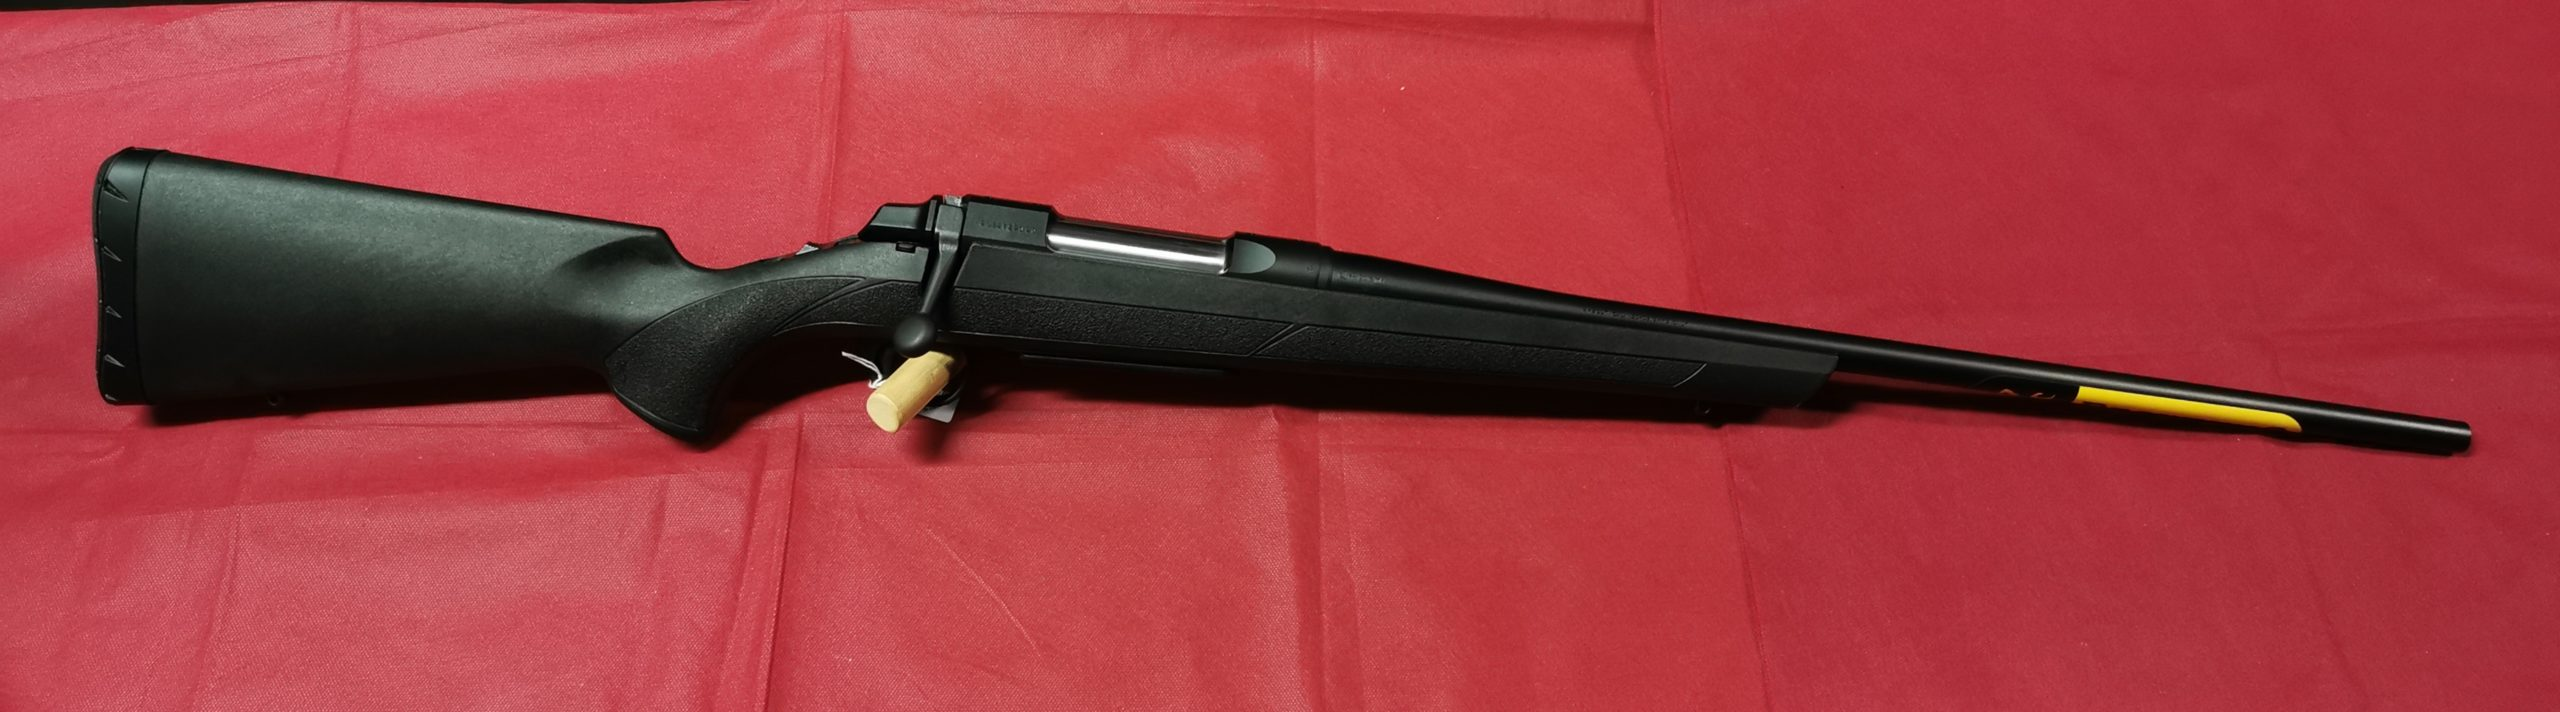 Browning Bolt action Image